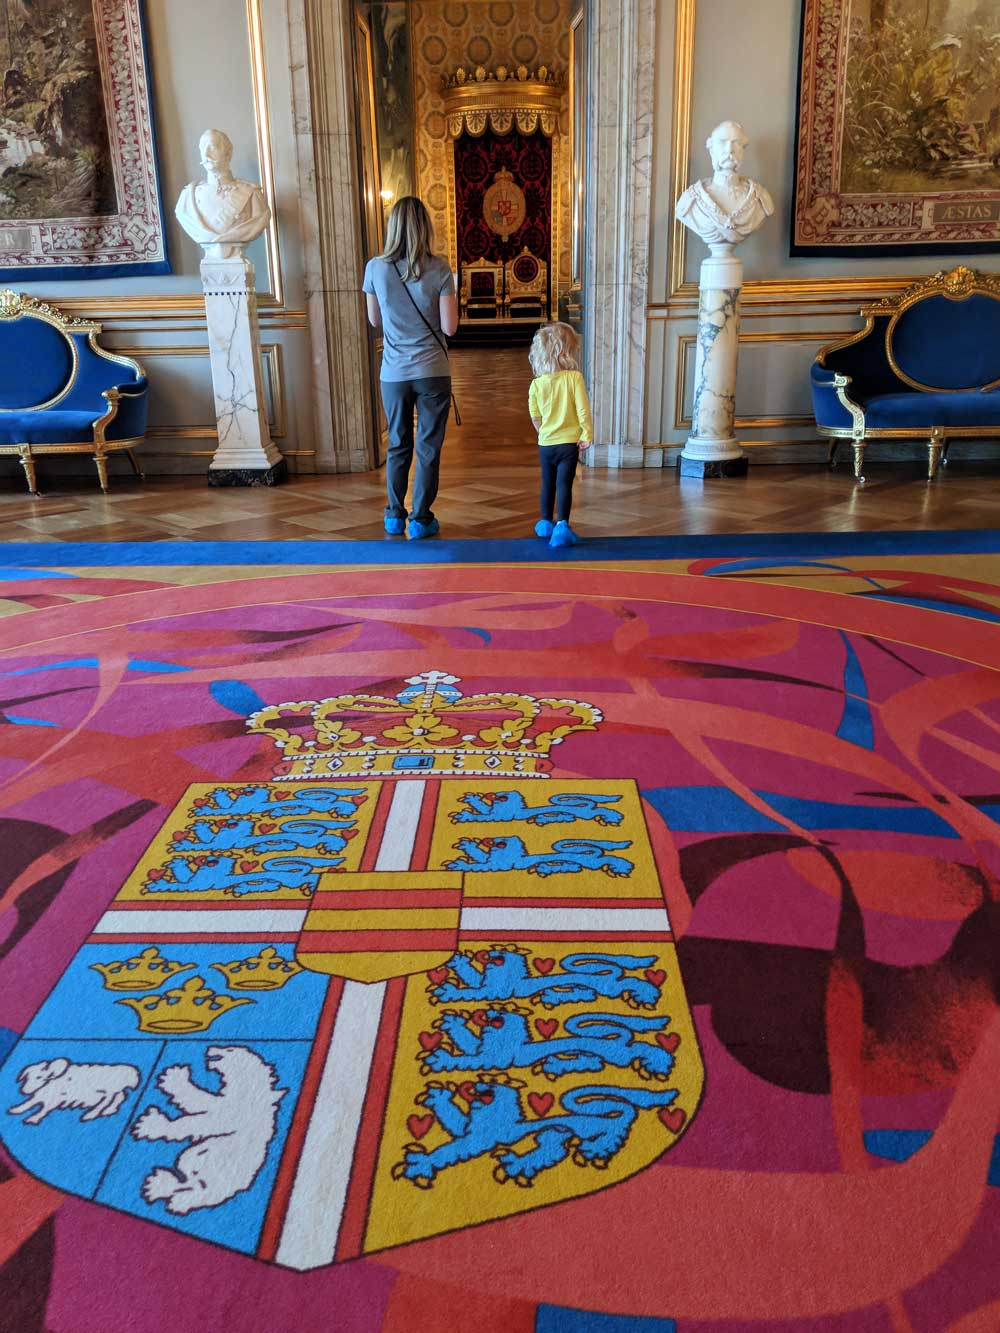 Christianborg Palace -2 day Copenhagen itinerary